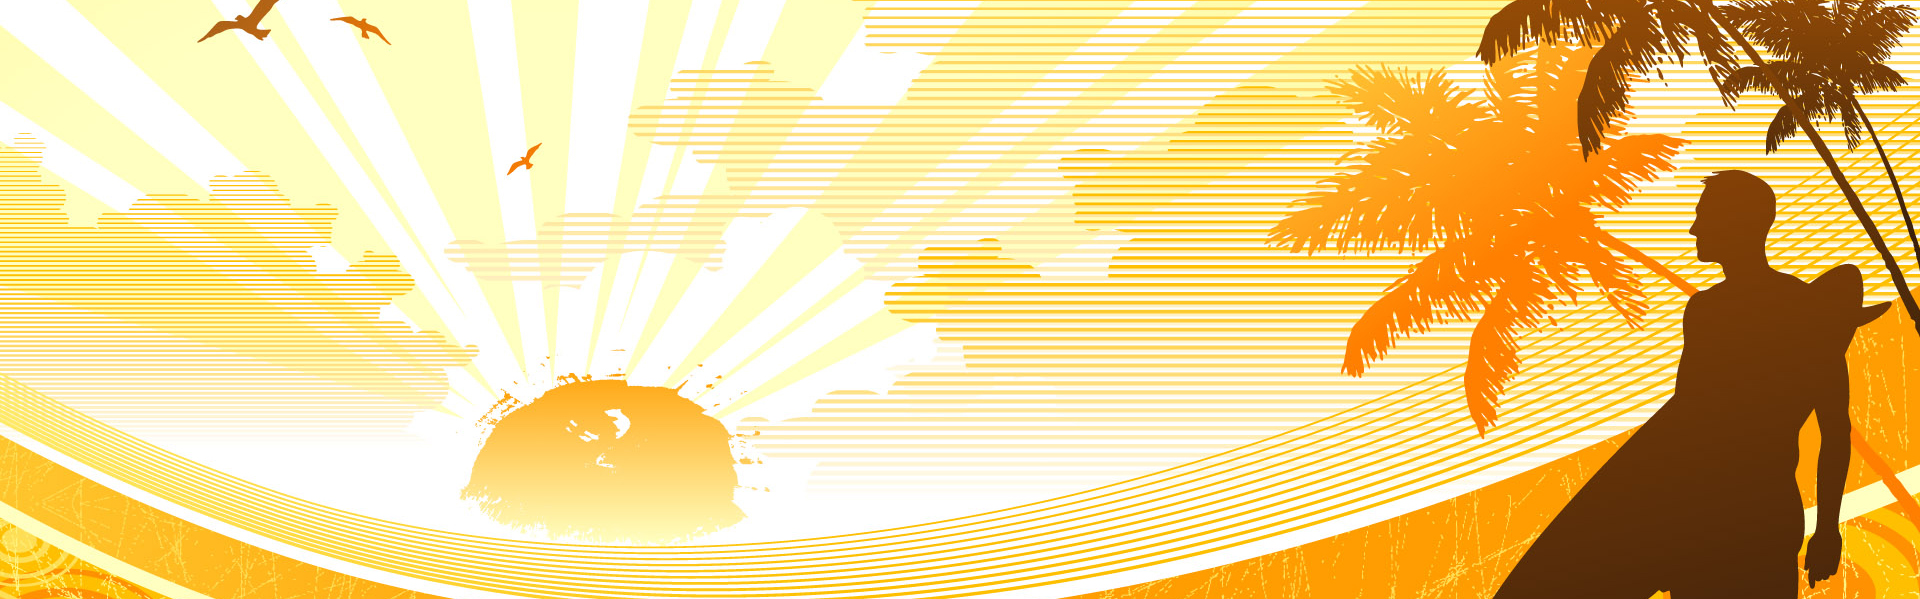 sunshine_widescreen_crop